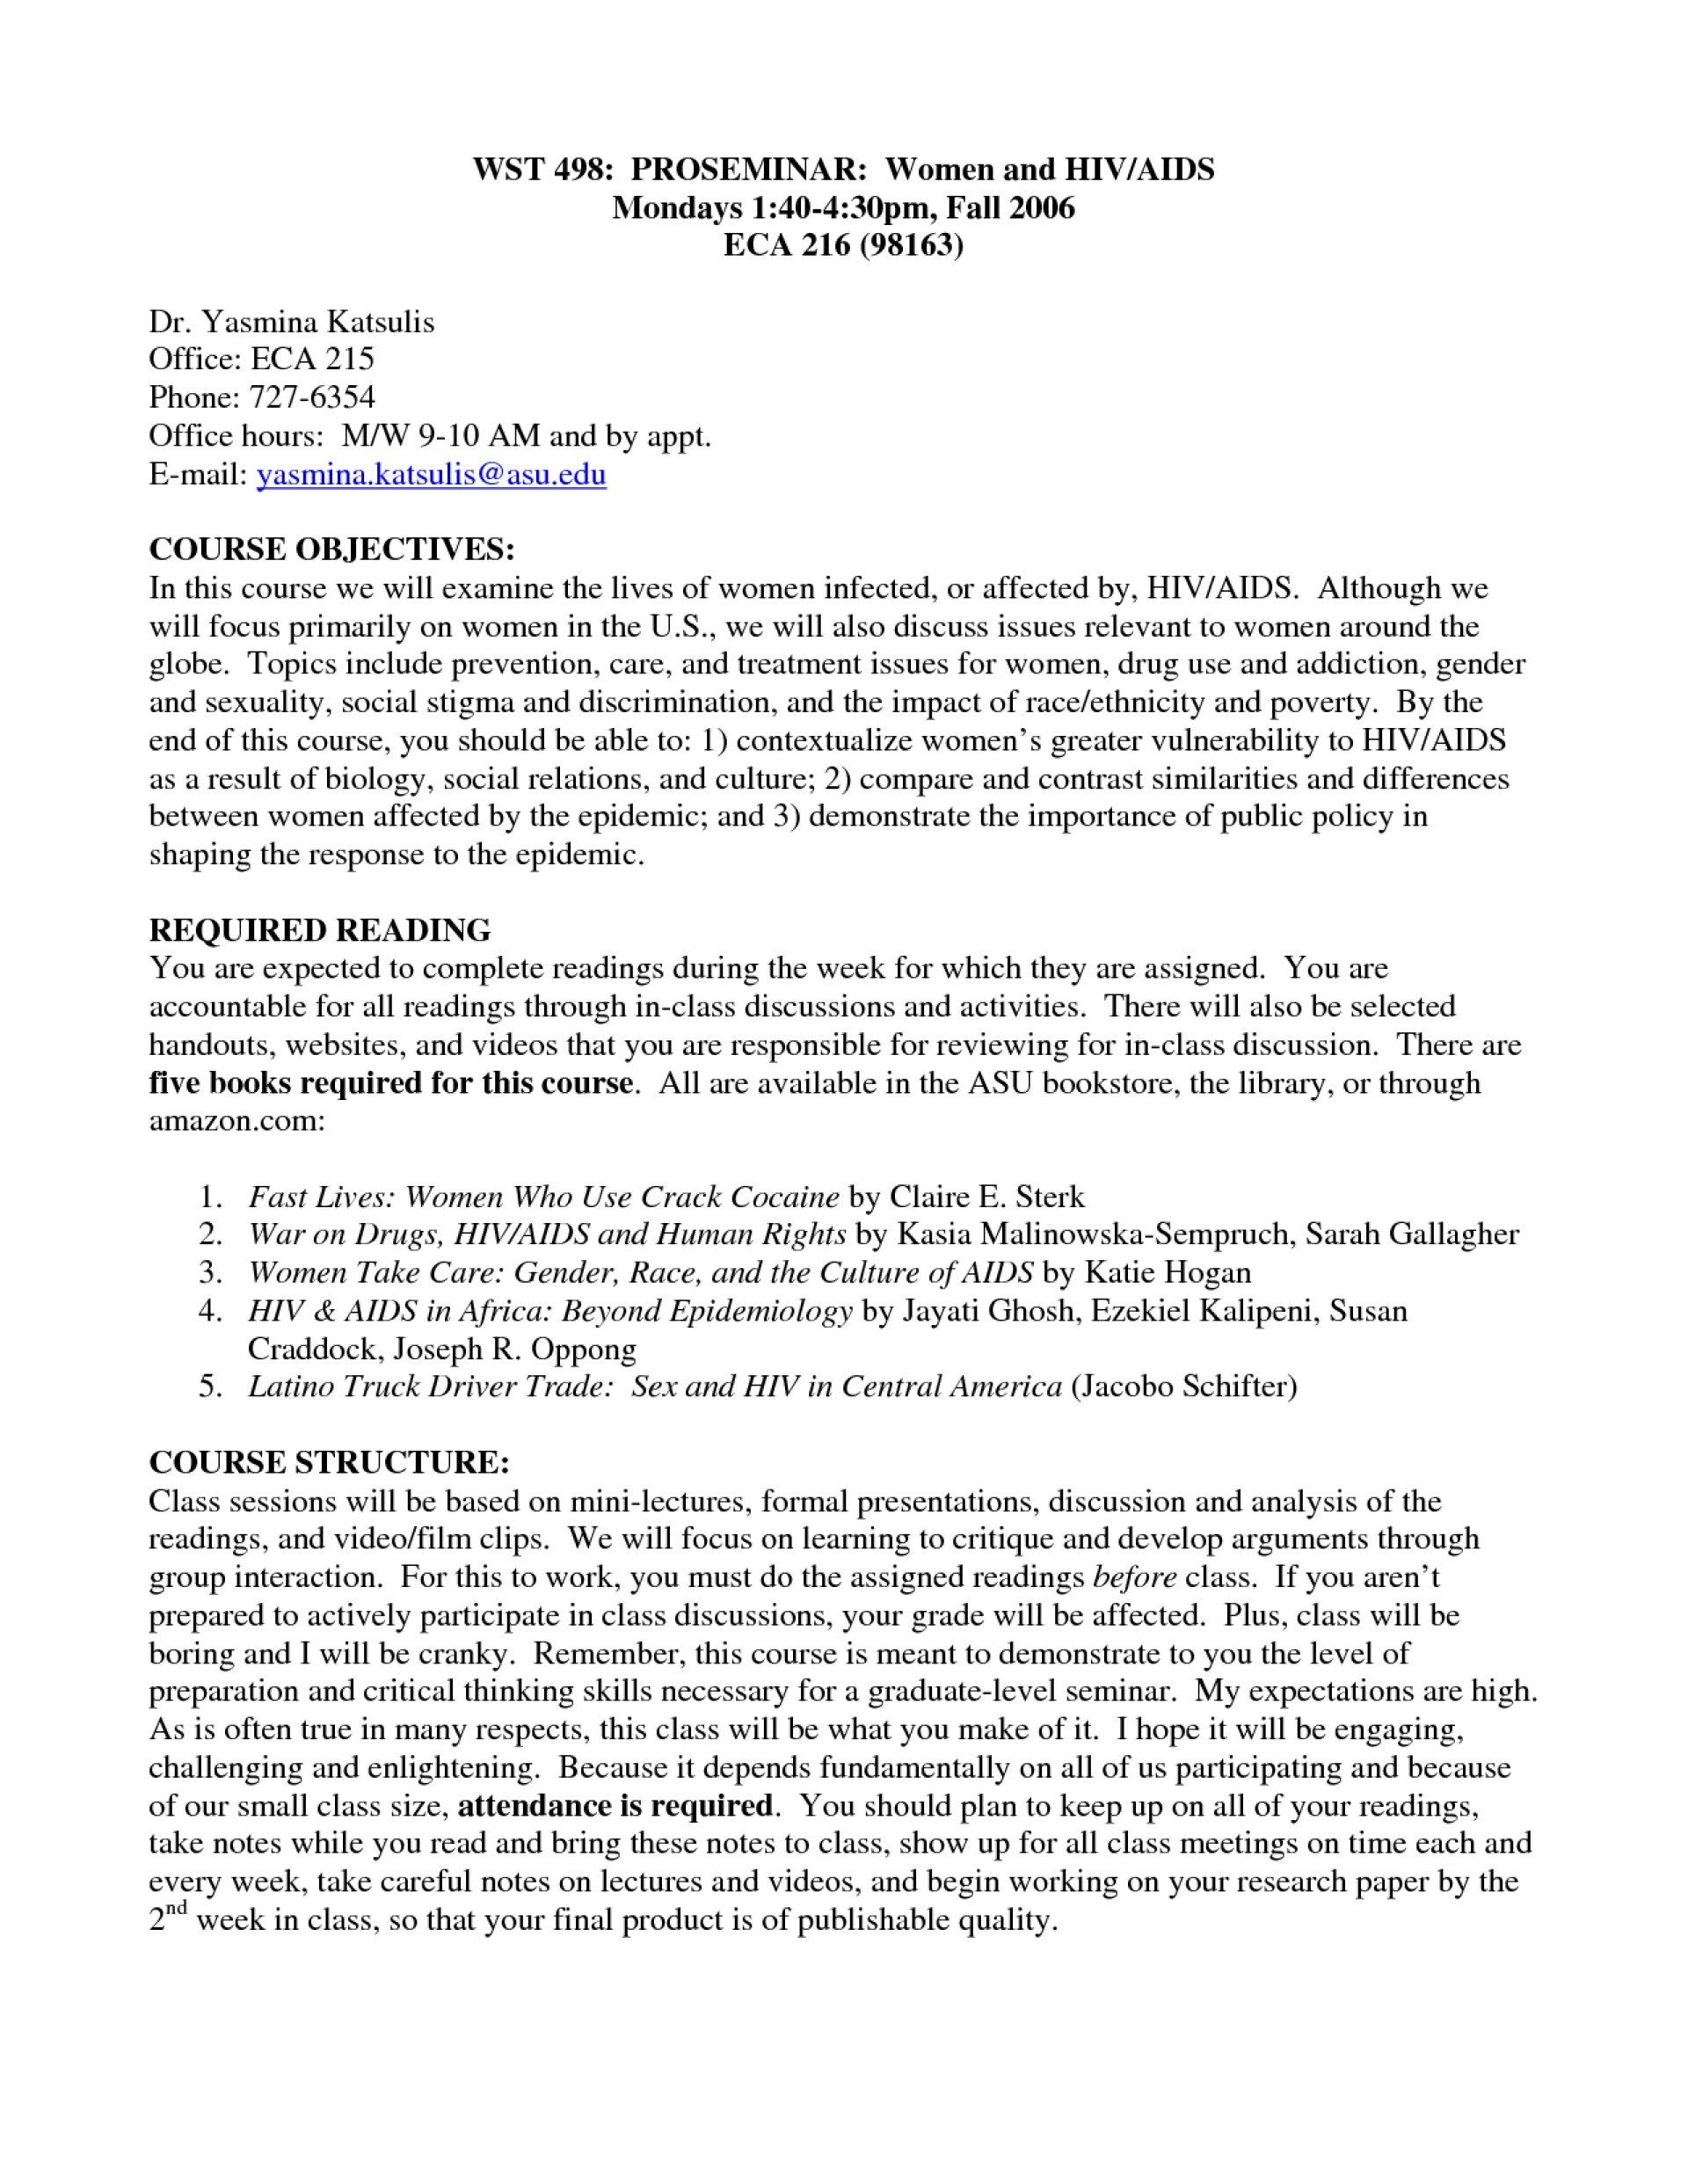 essay on aids research paper proposal   thatsnotus